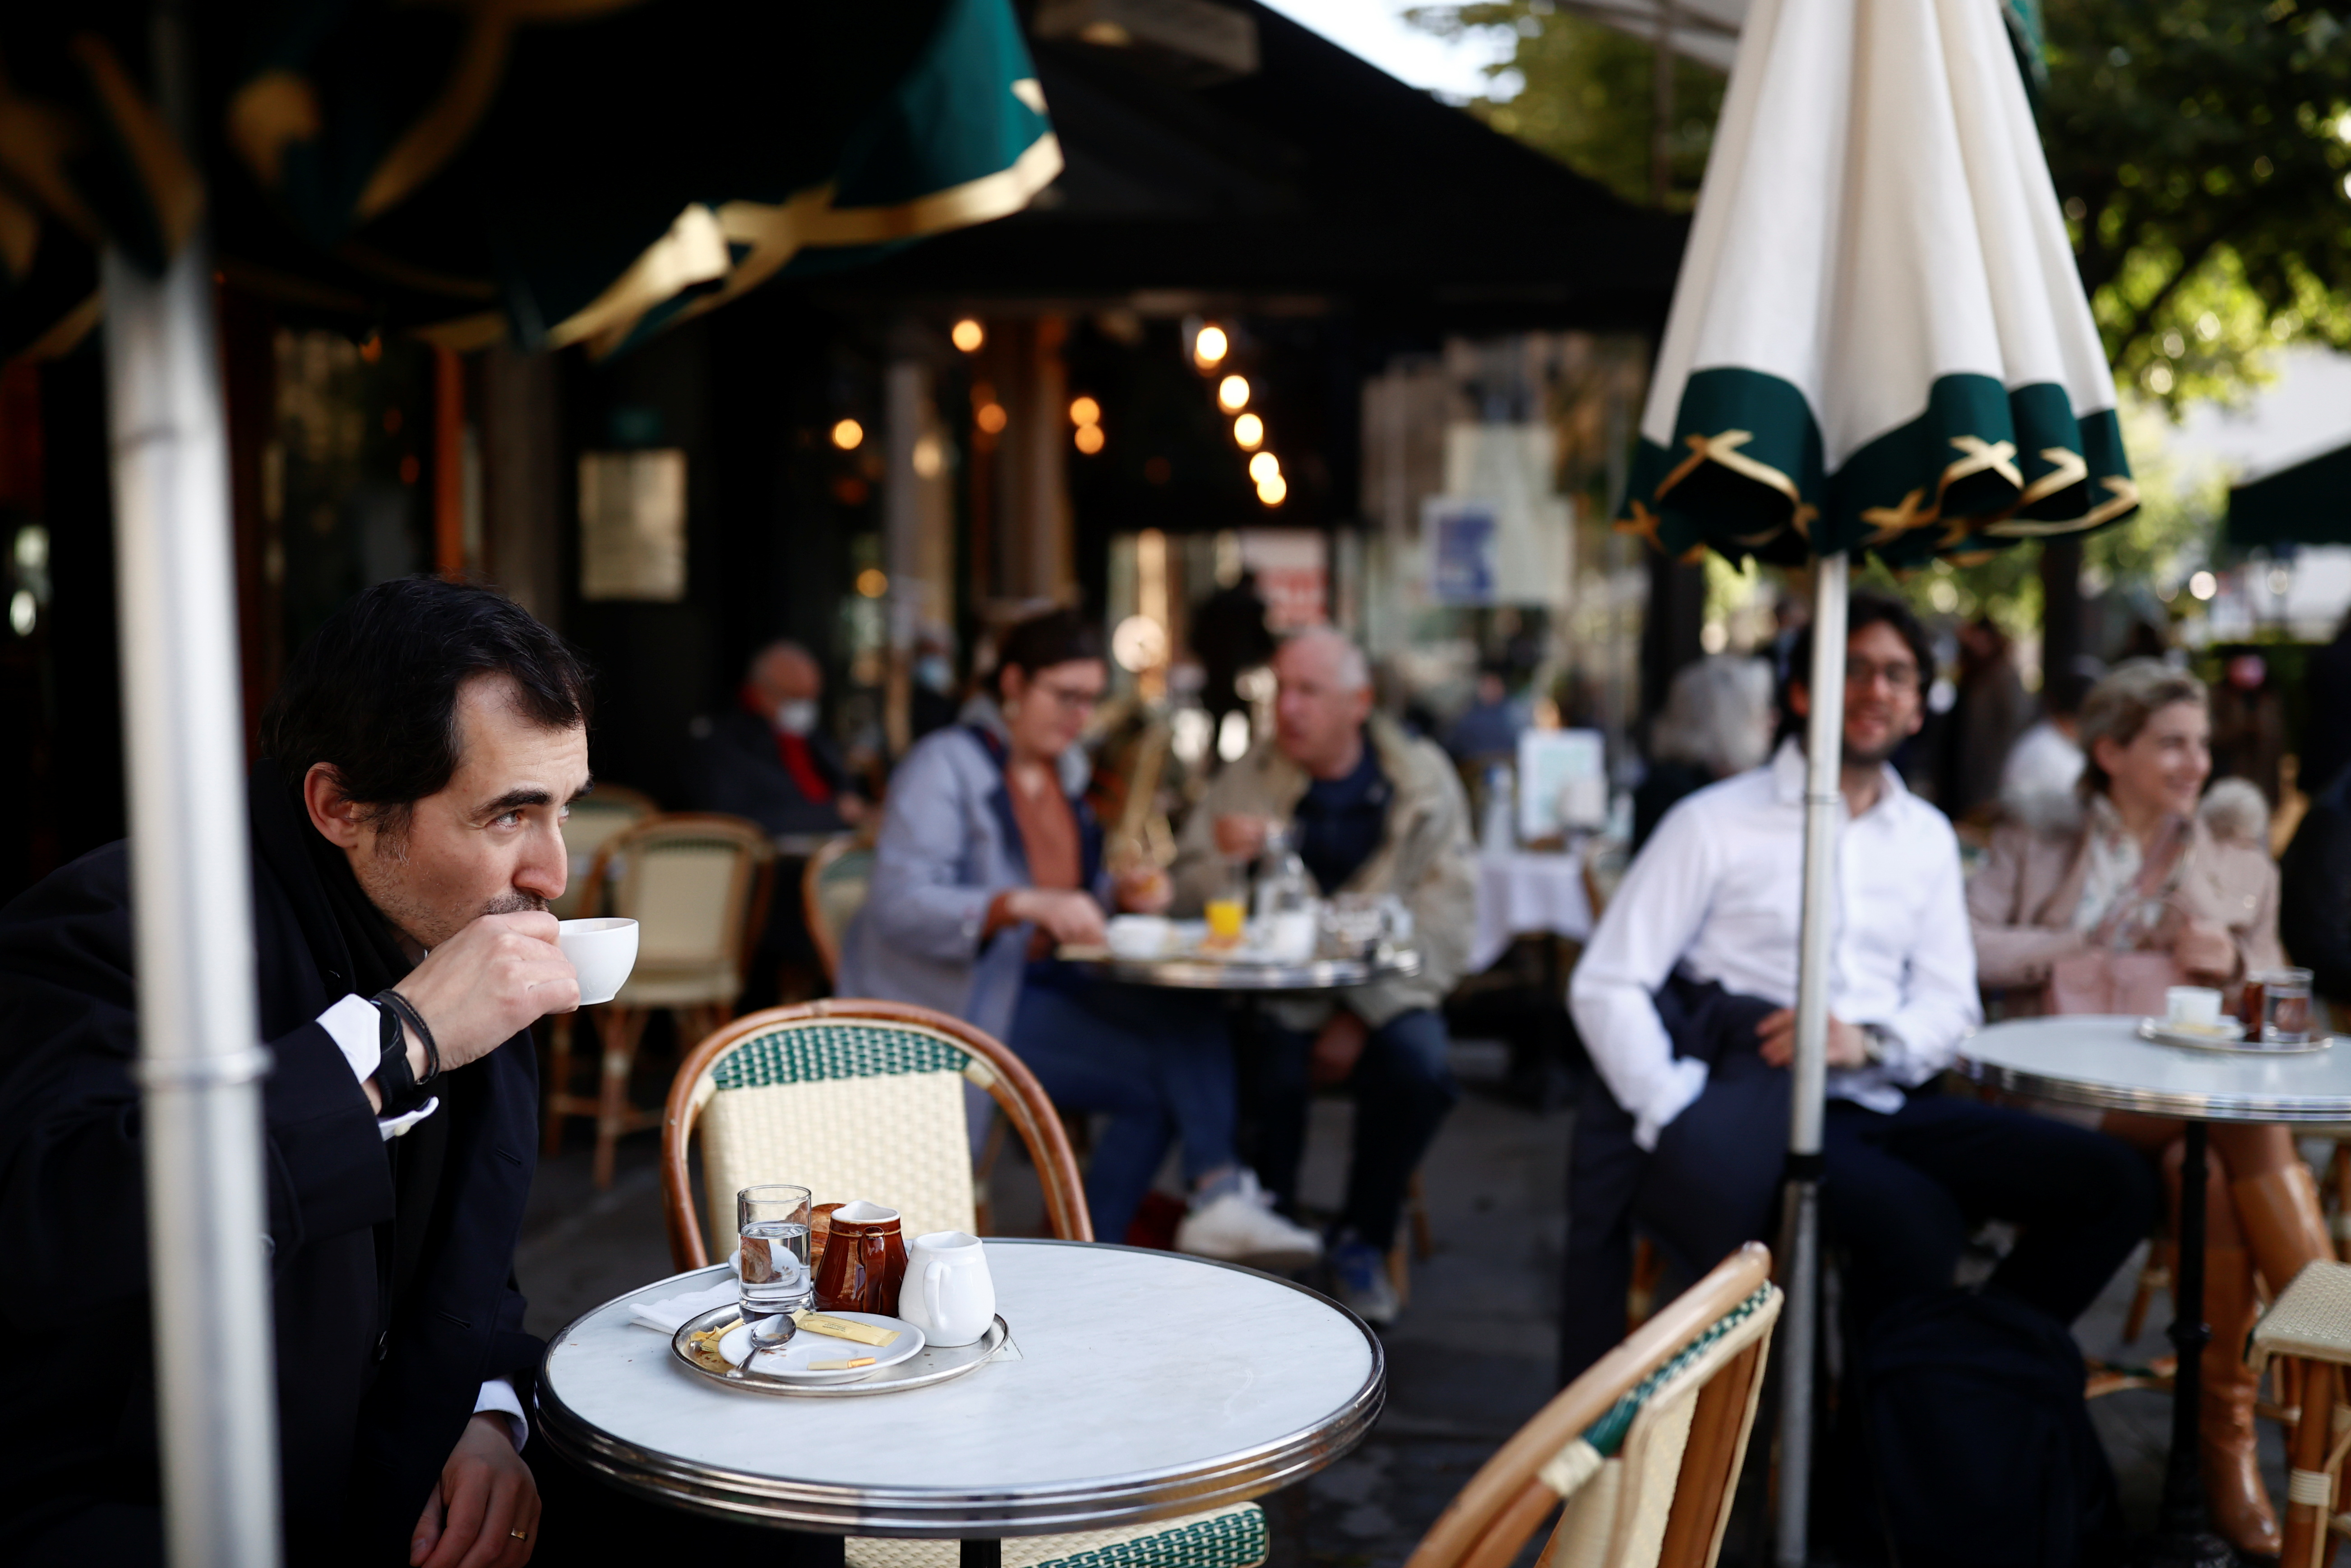 A customer enjoys a drink at the terrace of the cafe and restaurant Les Deux Magots, as cafes, bars and restaurants reopen their terraces after closing down for months, amid the coronavirus disease (COVID-19) outbreak, in Paris, France, May 19, 2021. REUTERS/Christian Hartmann